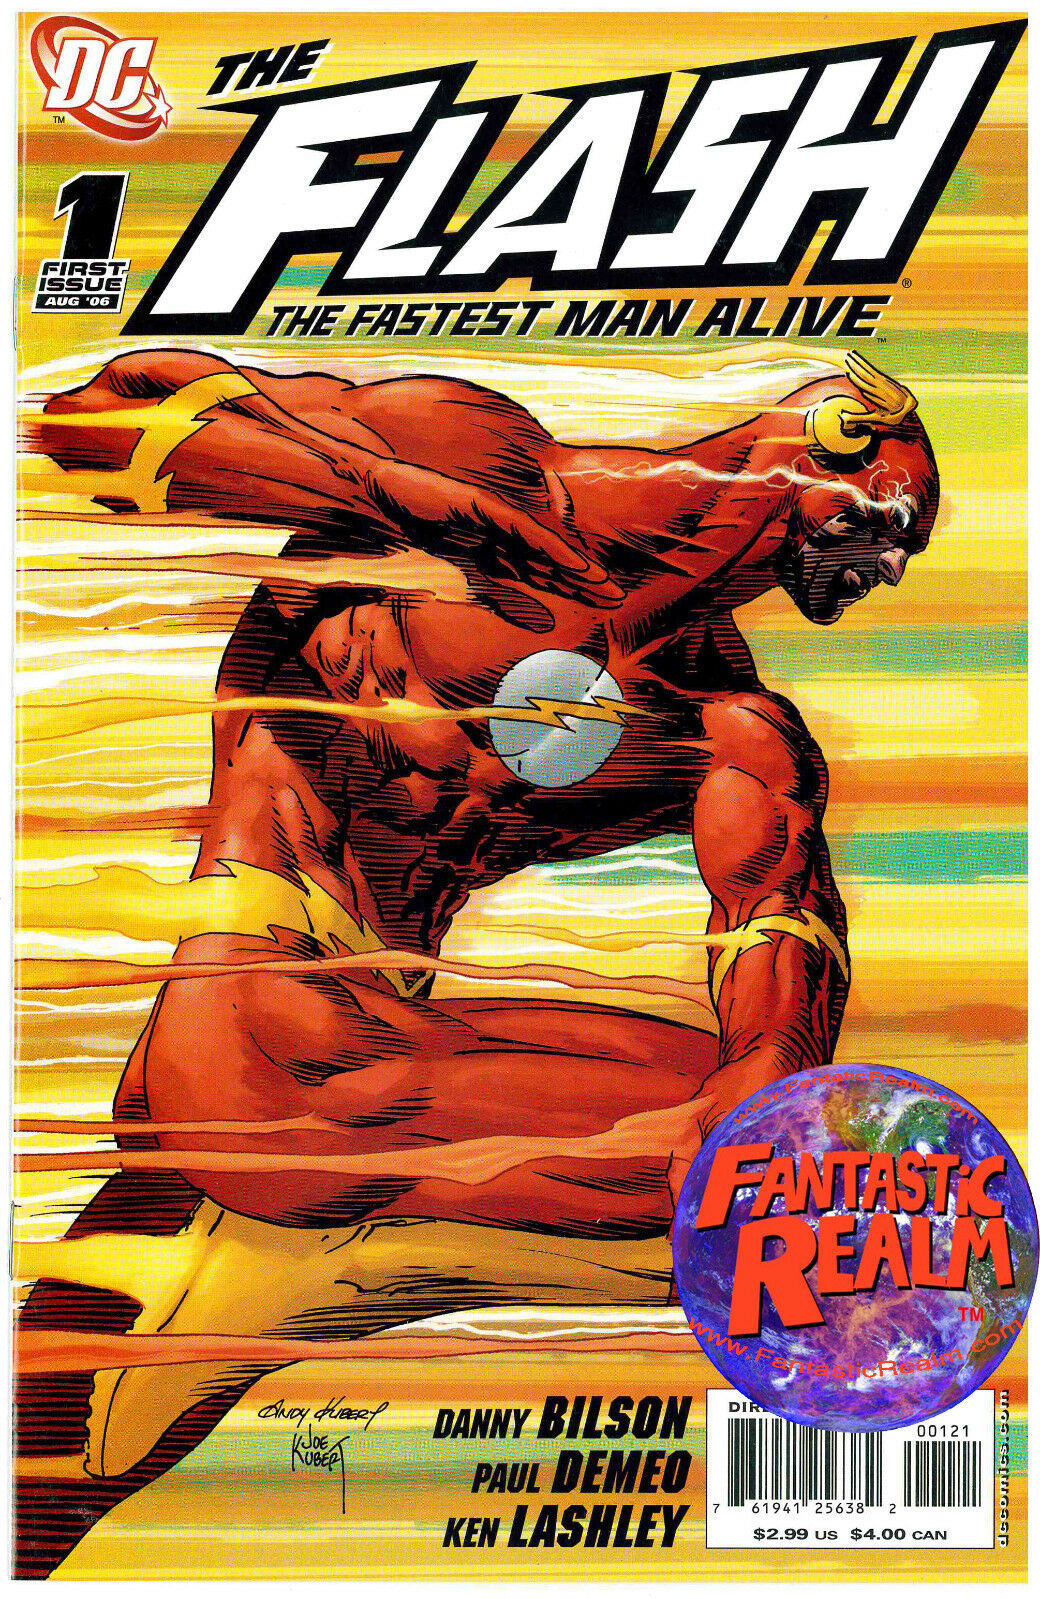 THE FLASH: THE FASTEST MAN ALIVE #1 ANDY KUBERT VARIANT 1:10 (2006) DC COMICS